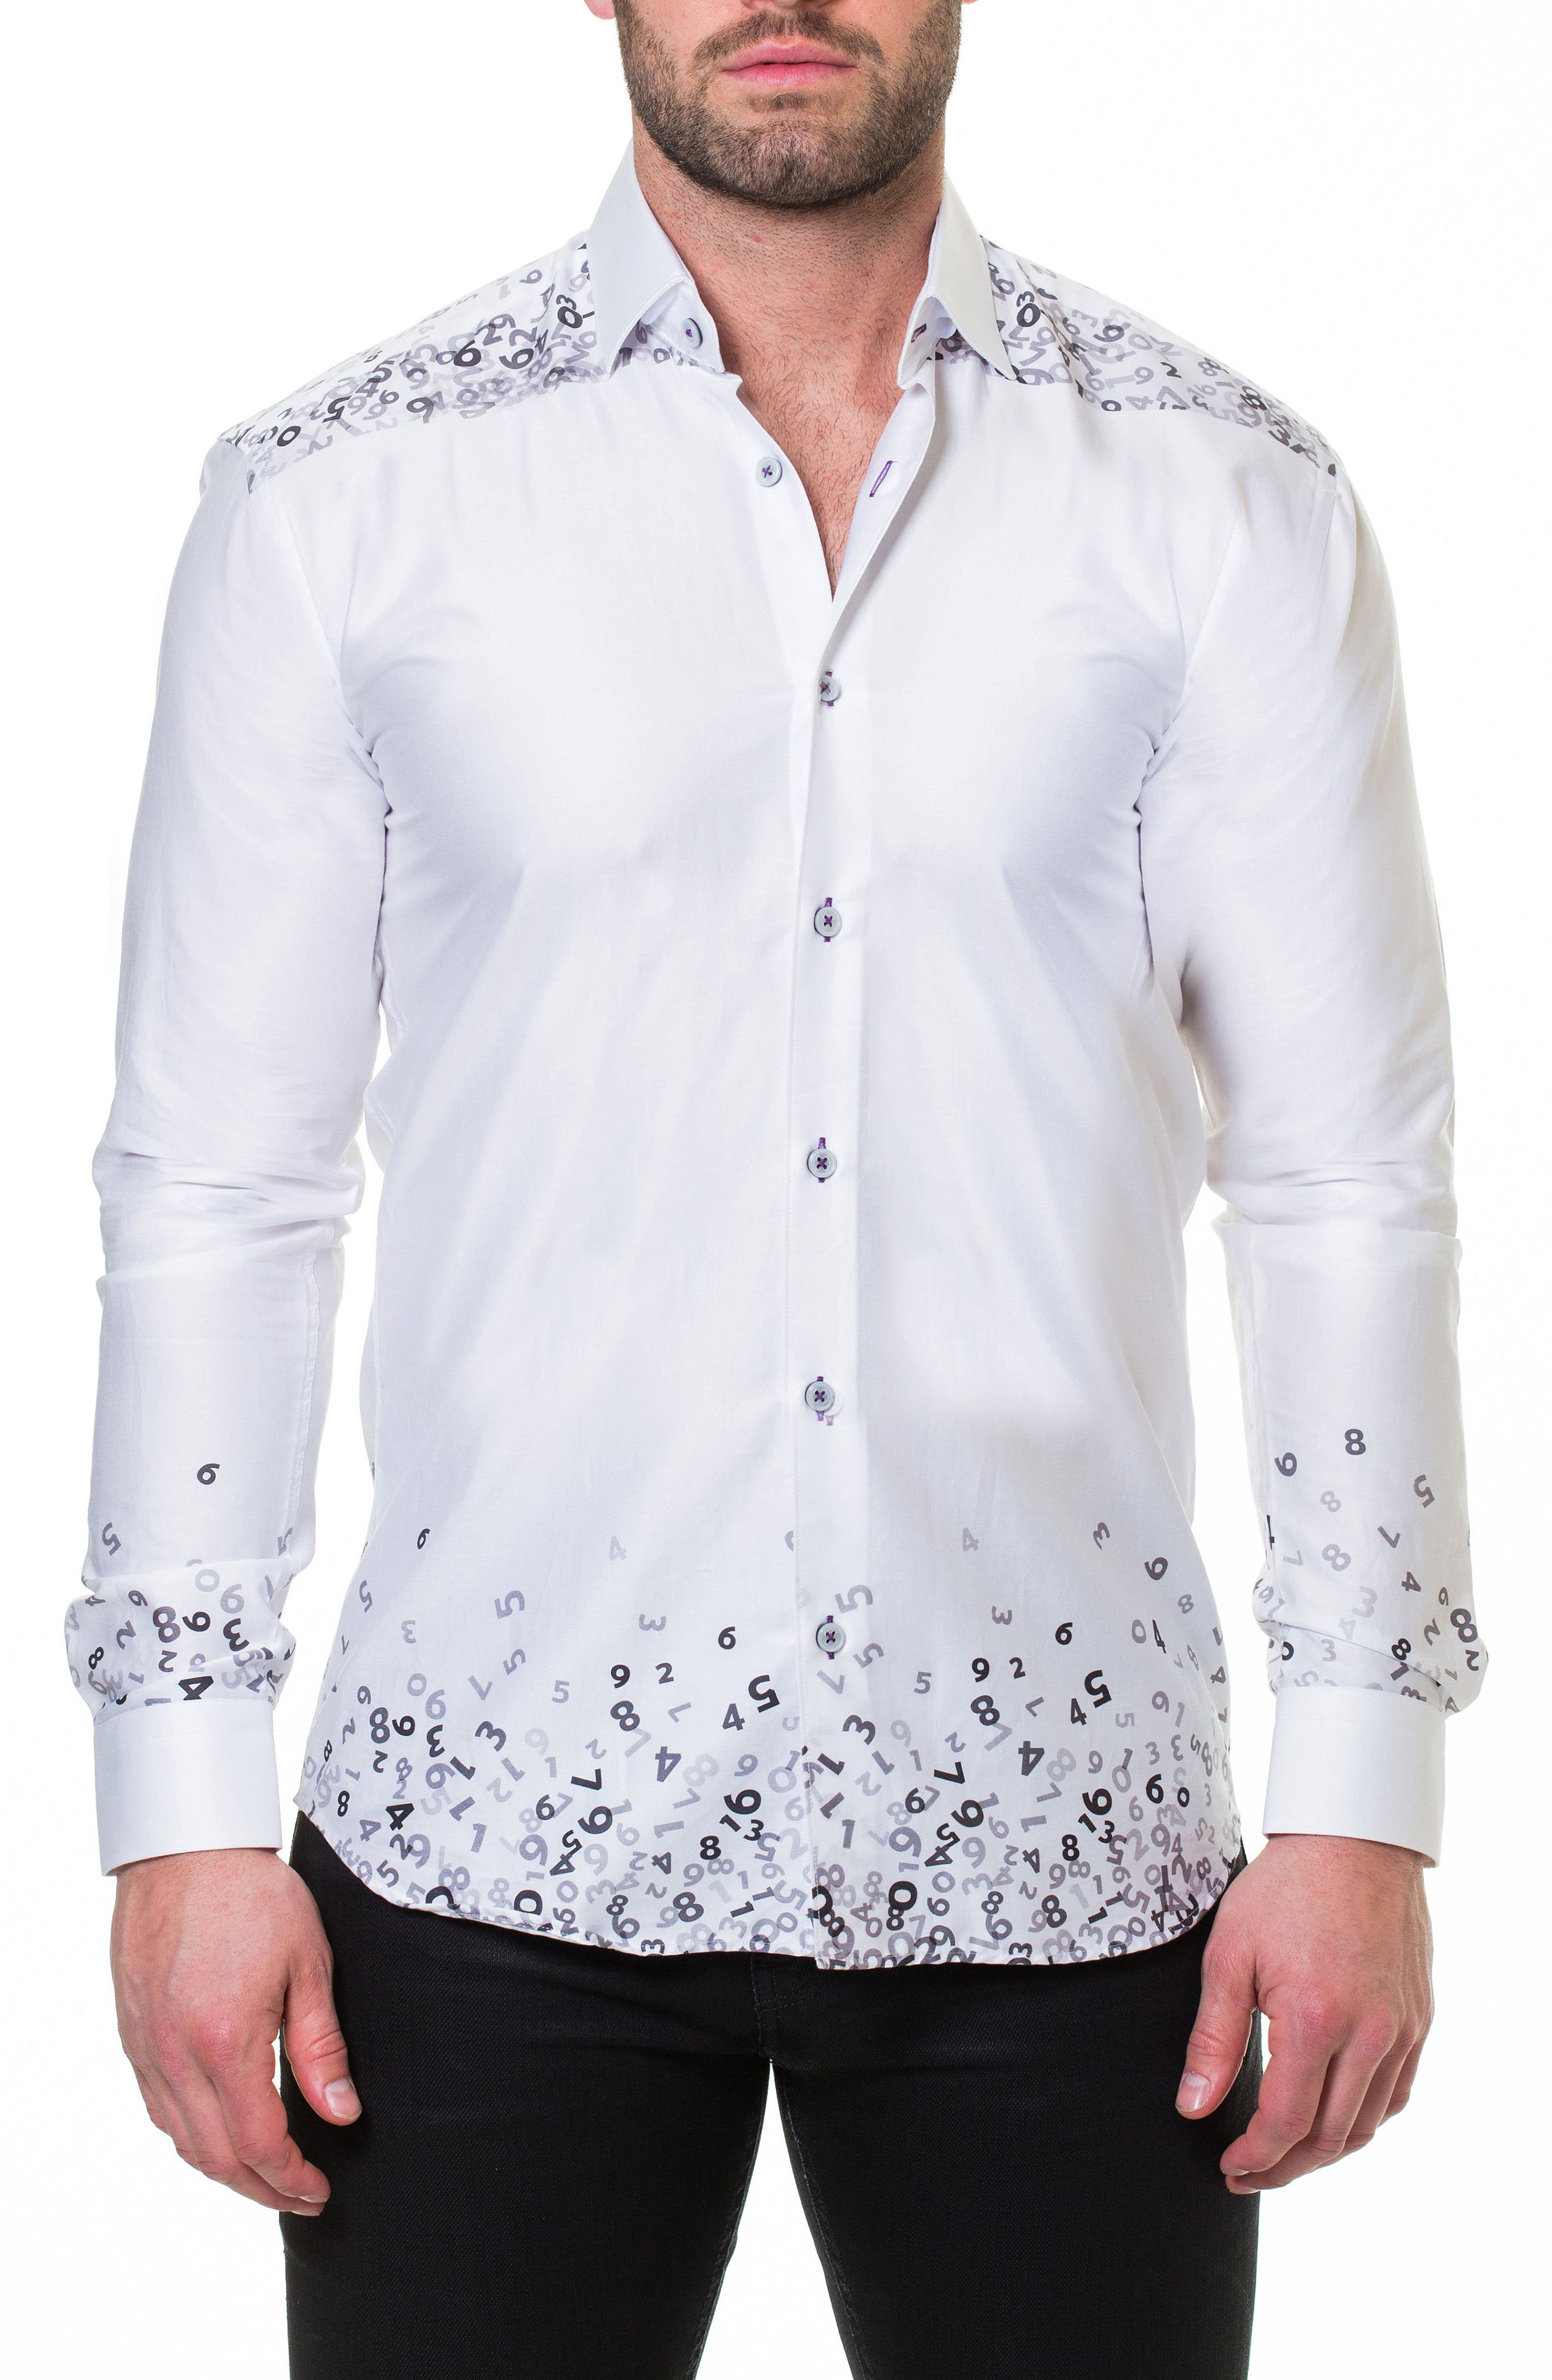 Luxor Counting White Slim Fit Sport Shirt,                             Alternate thumbnail 4, color,